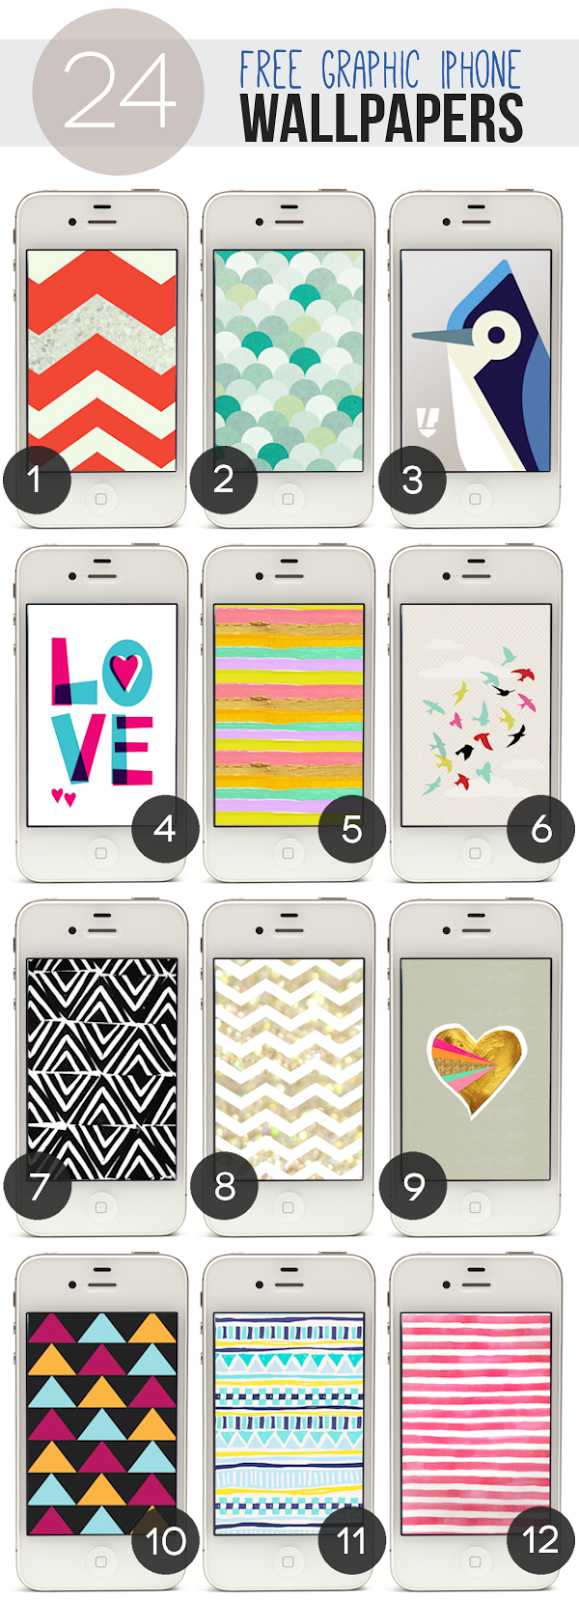 24 Free Graphic iPhone Wallpapers - Part 1